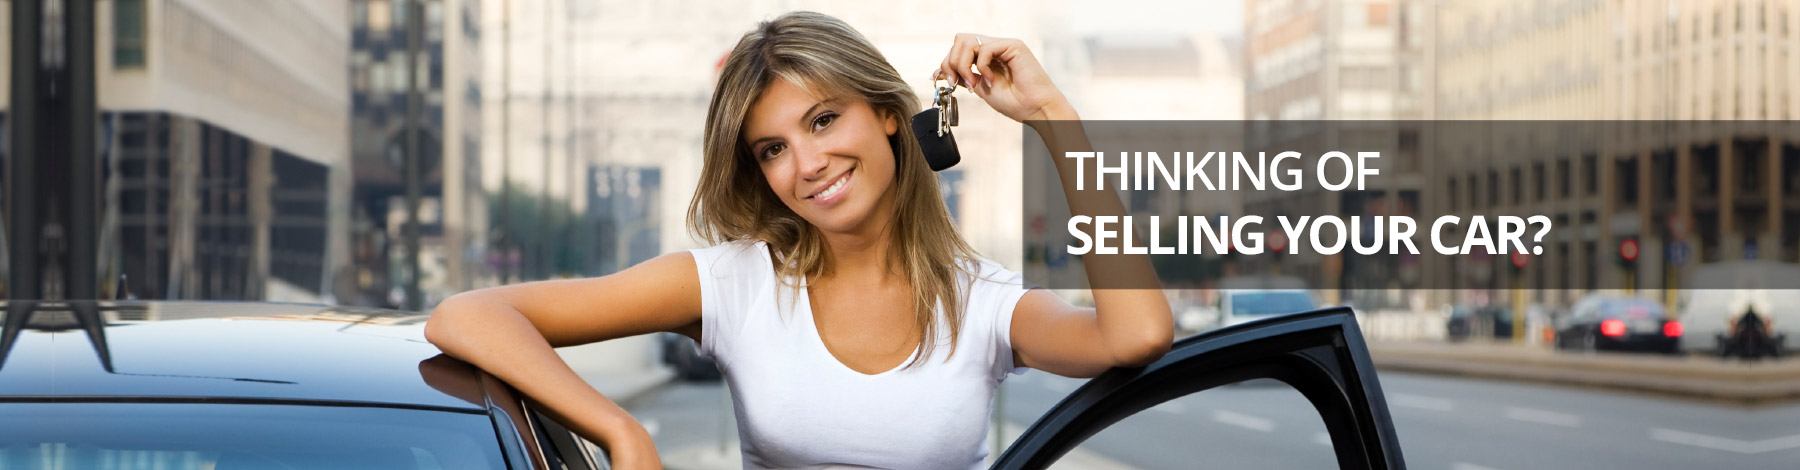 15-selling-your-car